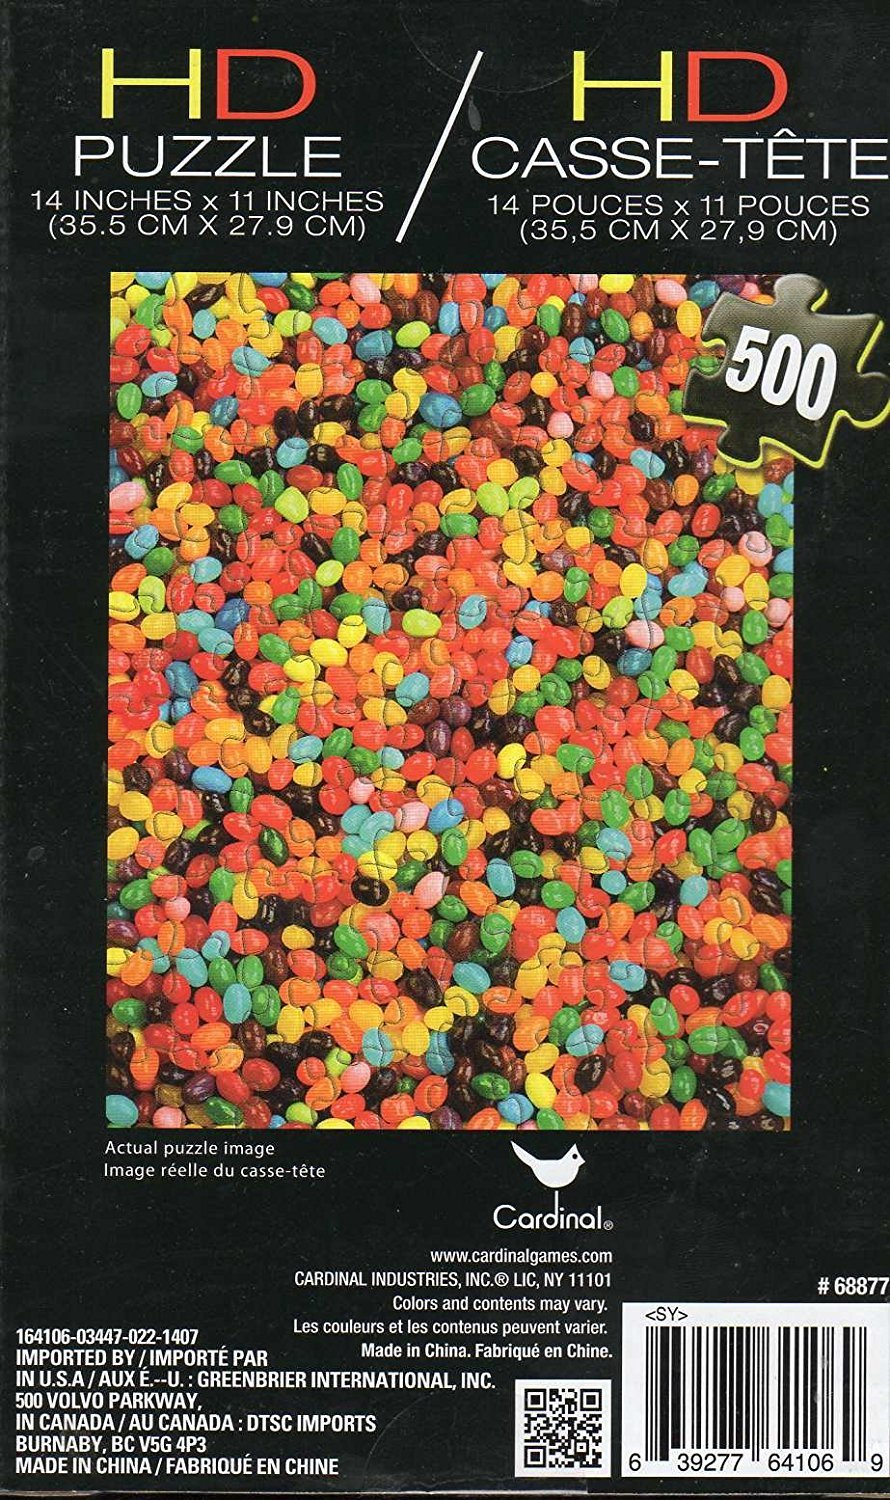 Hd Puzzle - 500 Pc Jigsaw Puzzle